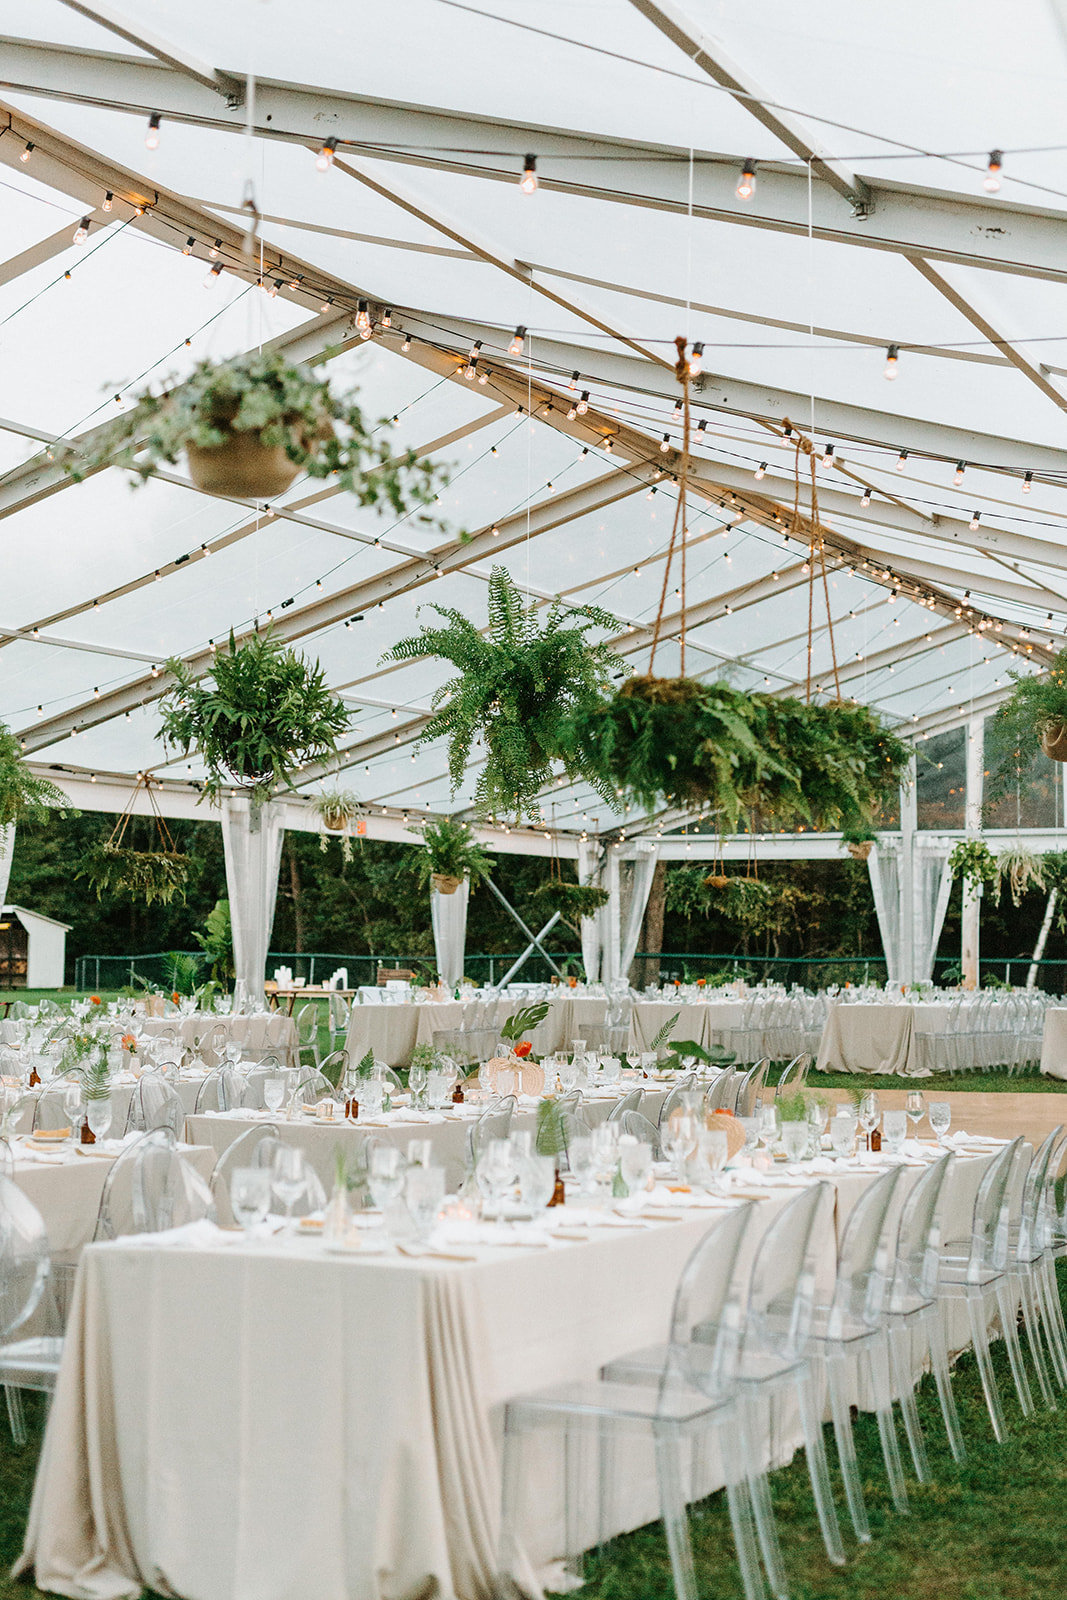 Monica-Relyea-Events-Hyde-Photography-Camp-Scatico-Wedding-Upstate-New-York-NY-Hudson-Valley-Elizaville-Tivoli-Tropical-Clear-Tent-Outdoor-NYC-Planner-Fall-Jewish-611